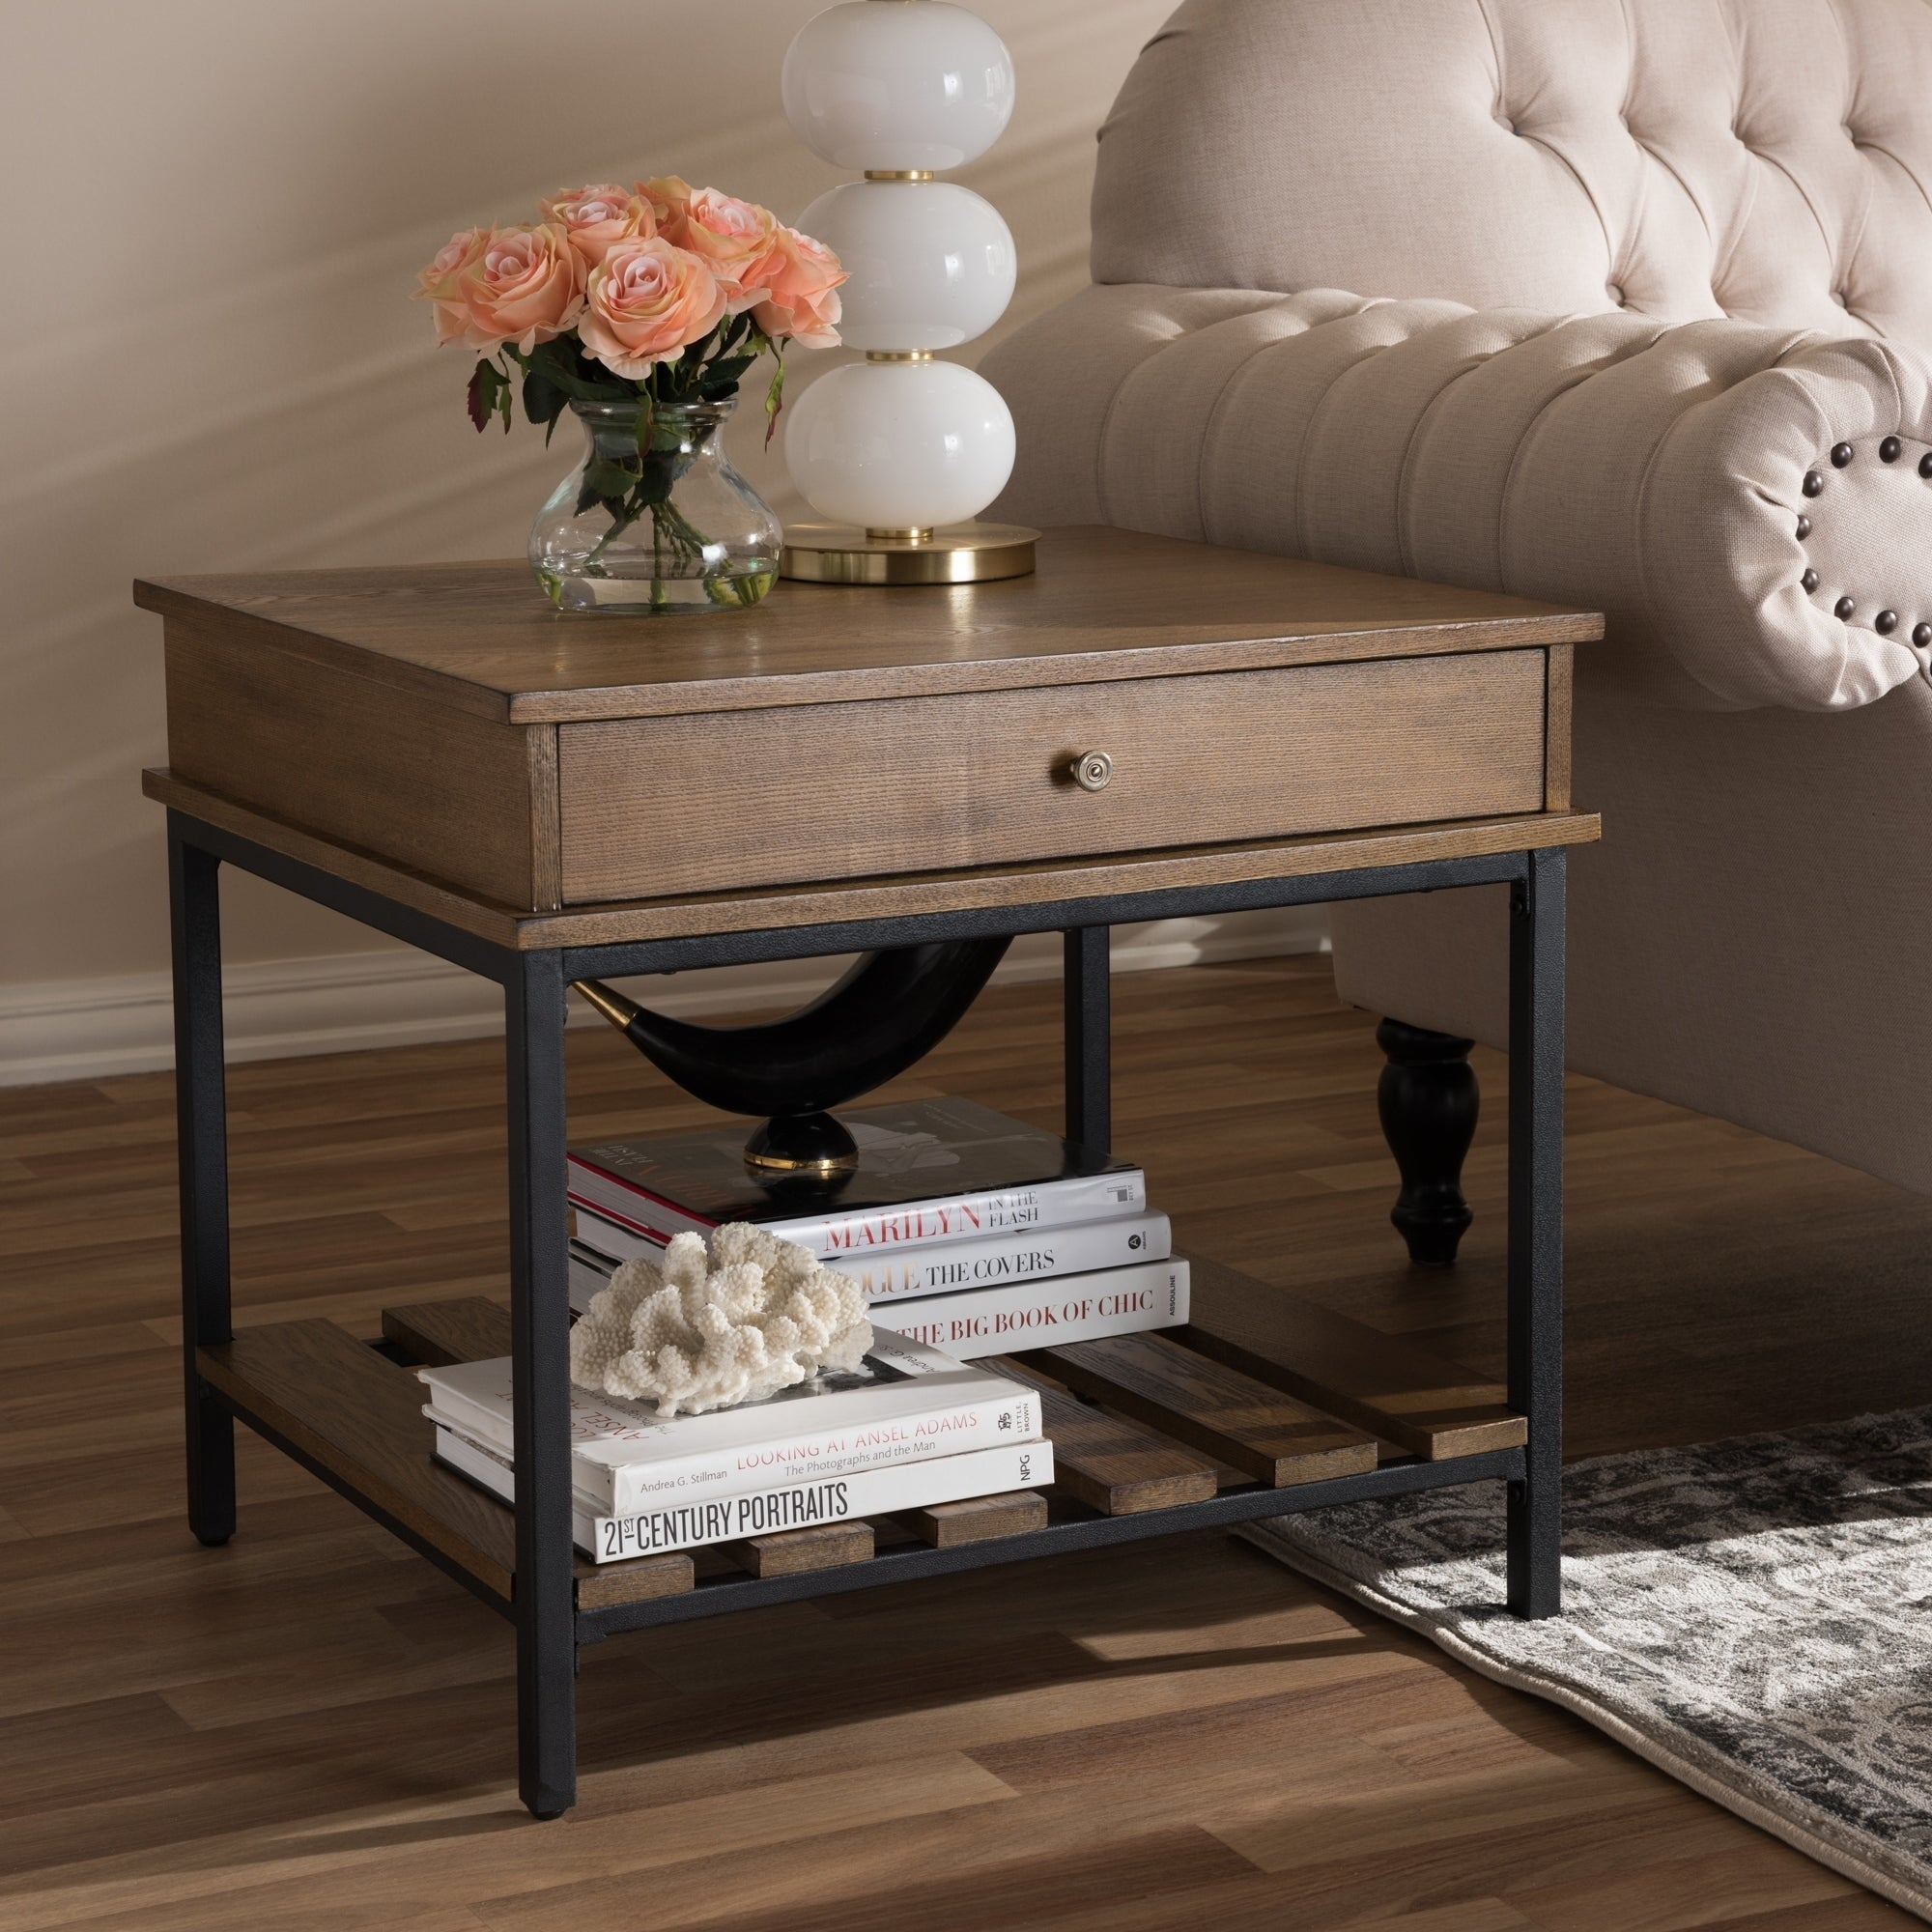 rustic brown and black end table baxton studio free tables target teal painted lamp furniture house basket storage bentwood entertainment unit companies row credit card sign